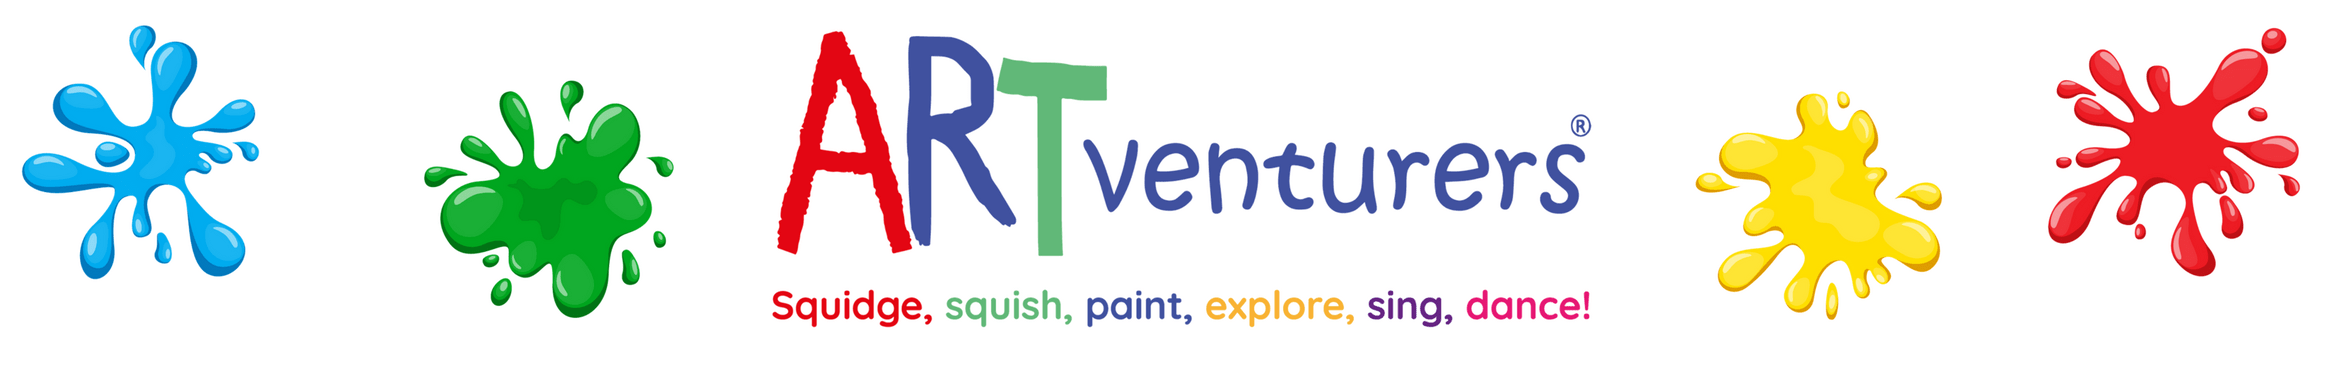 ARTventurers Franchise Opportunities